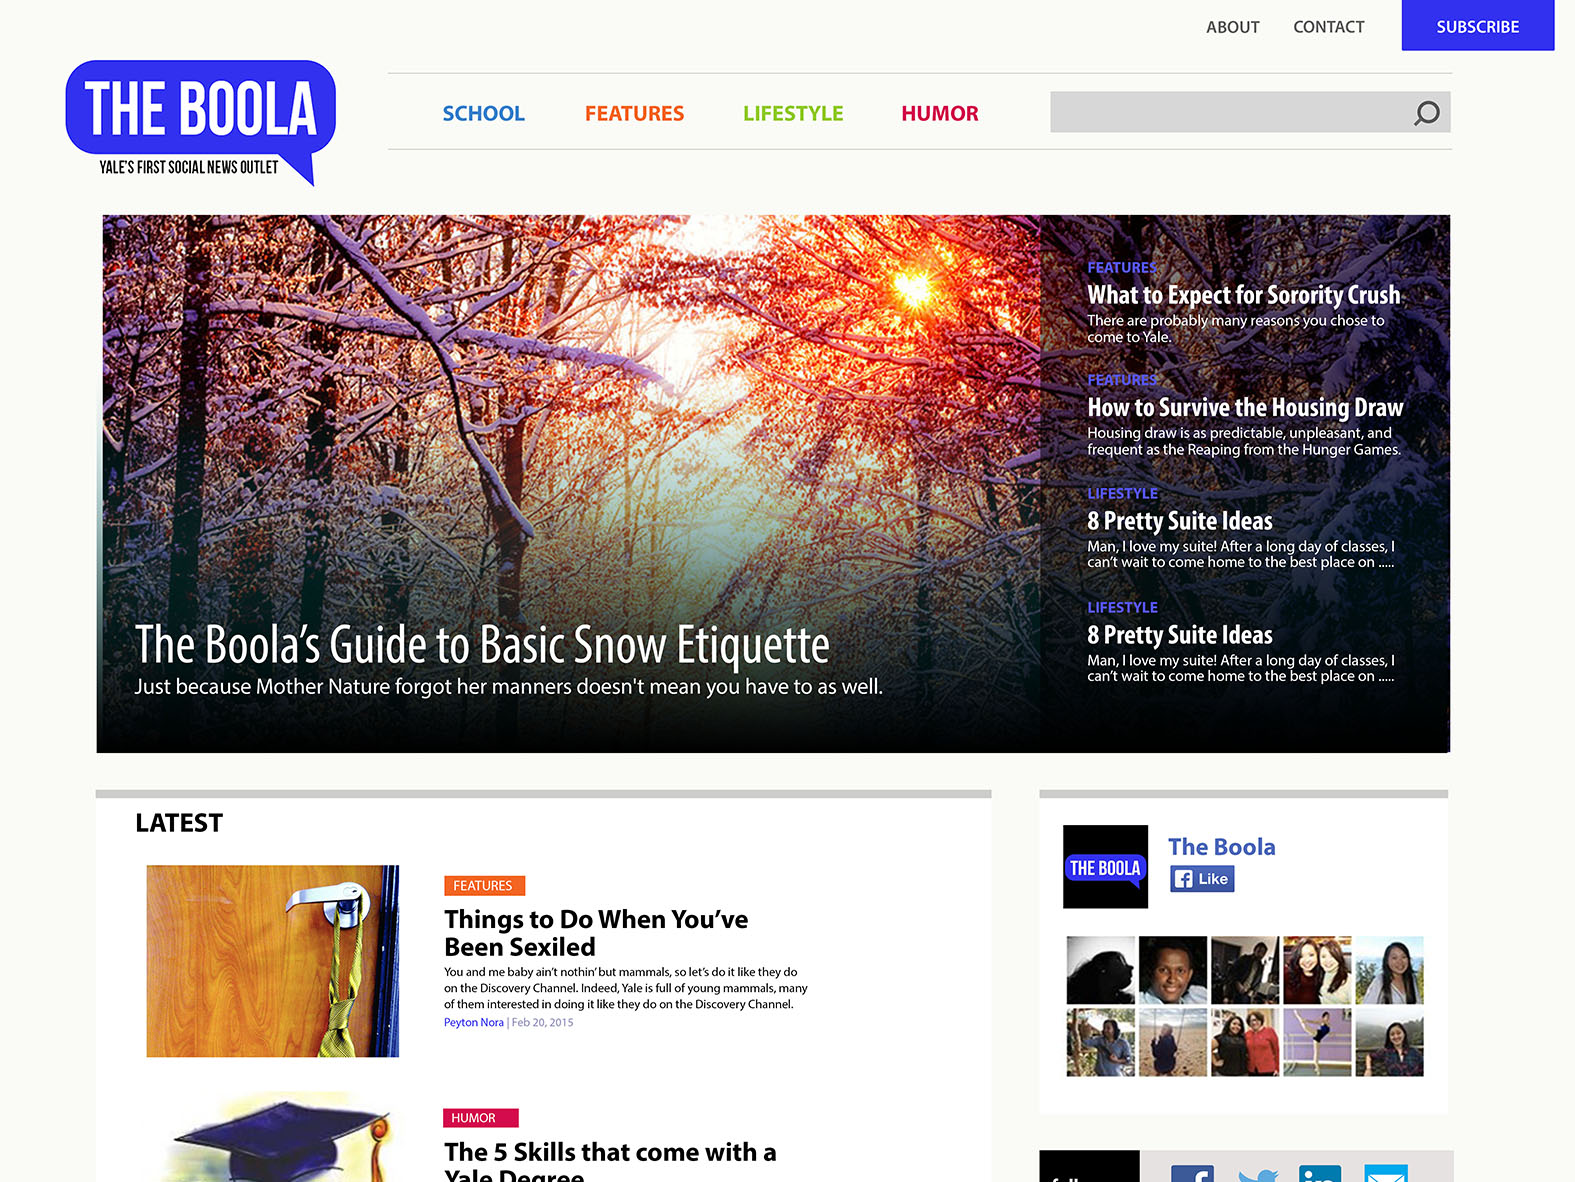 TheBoola Website Design